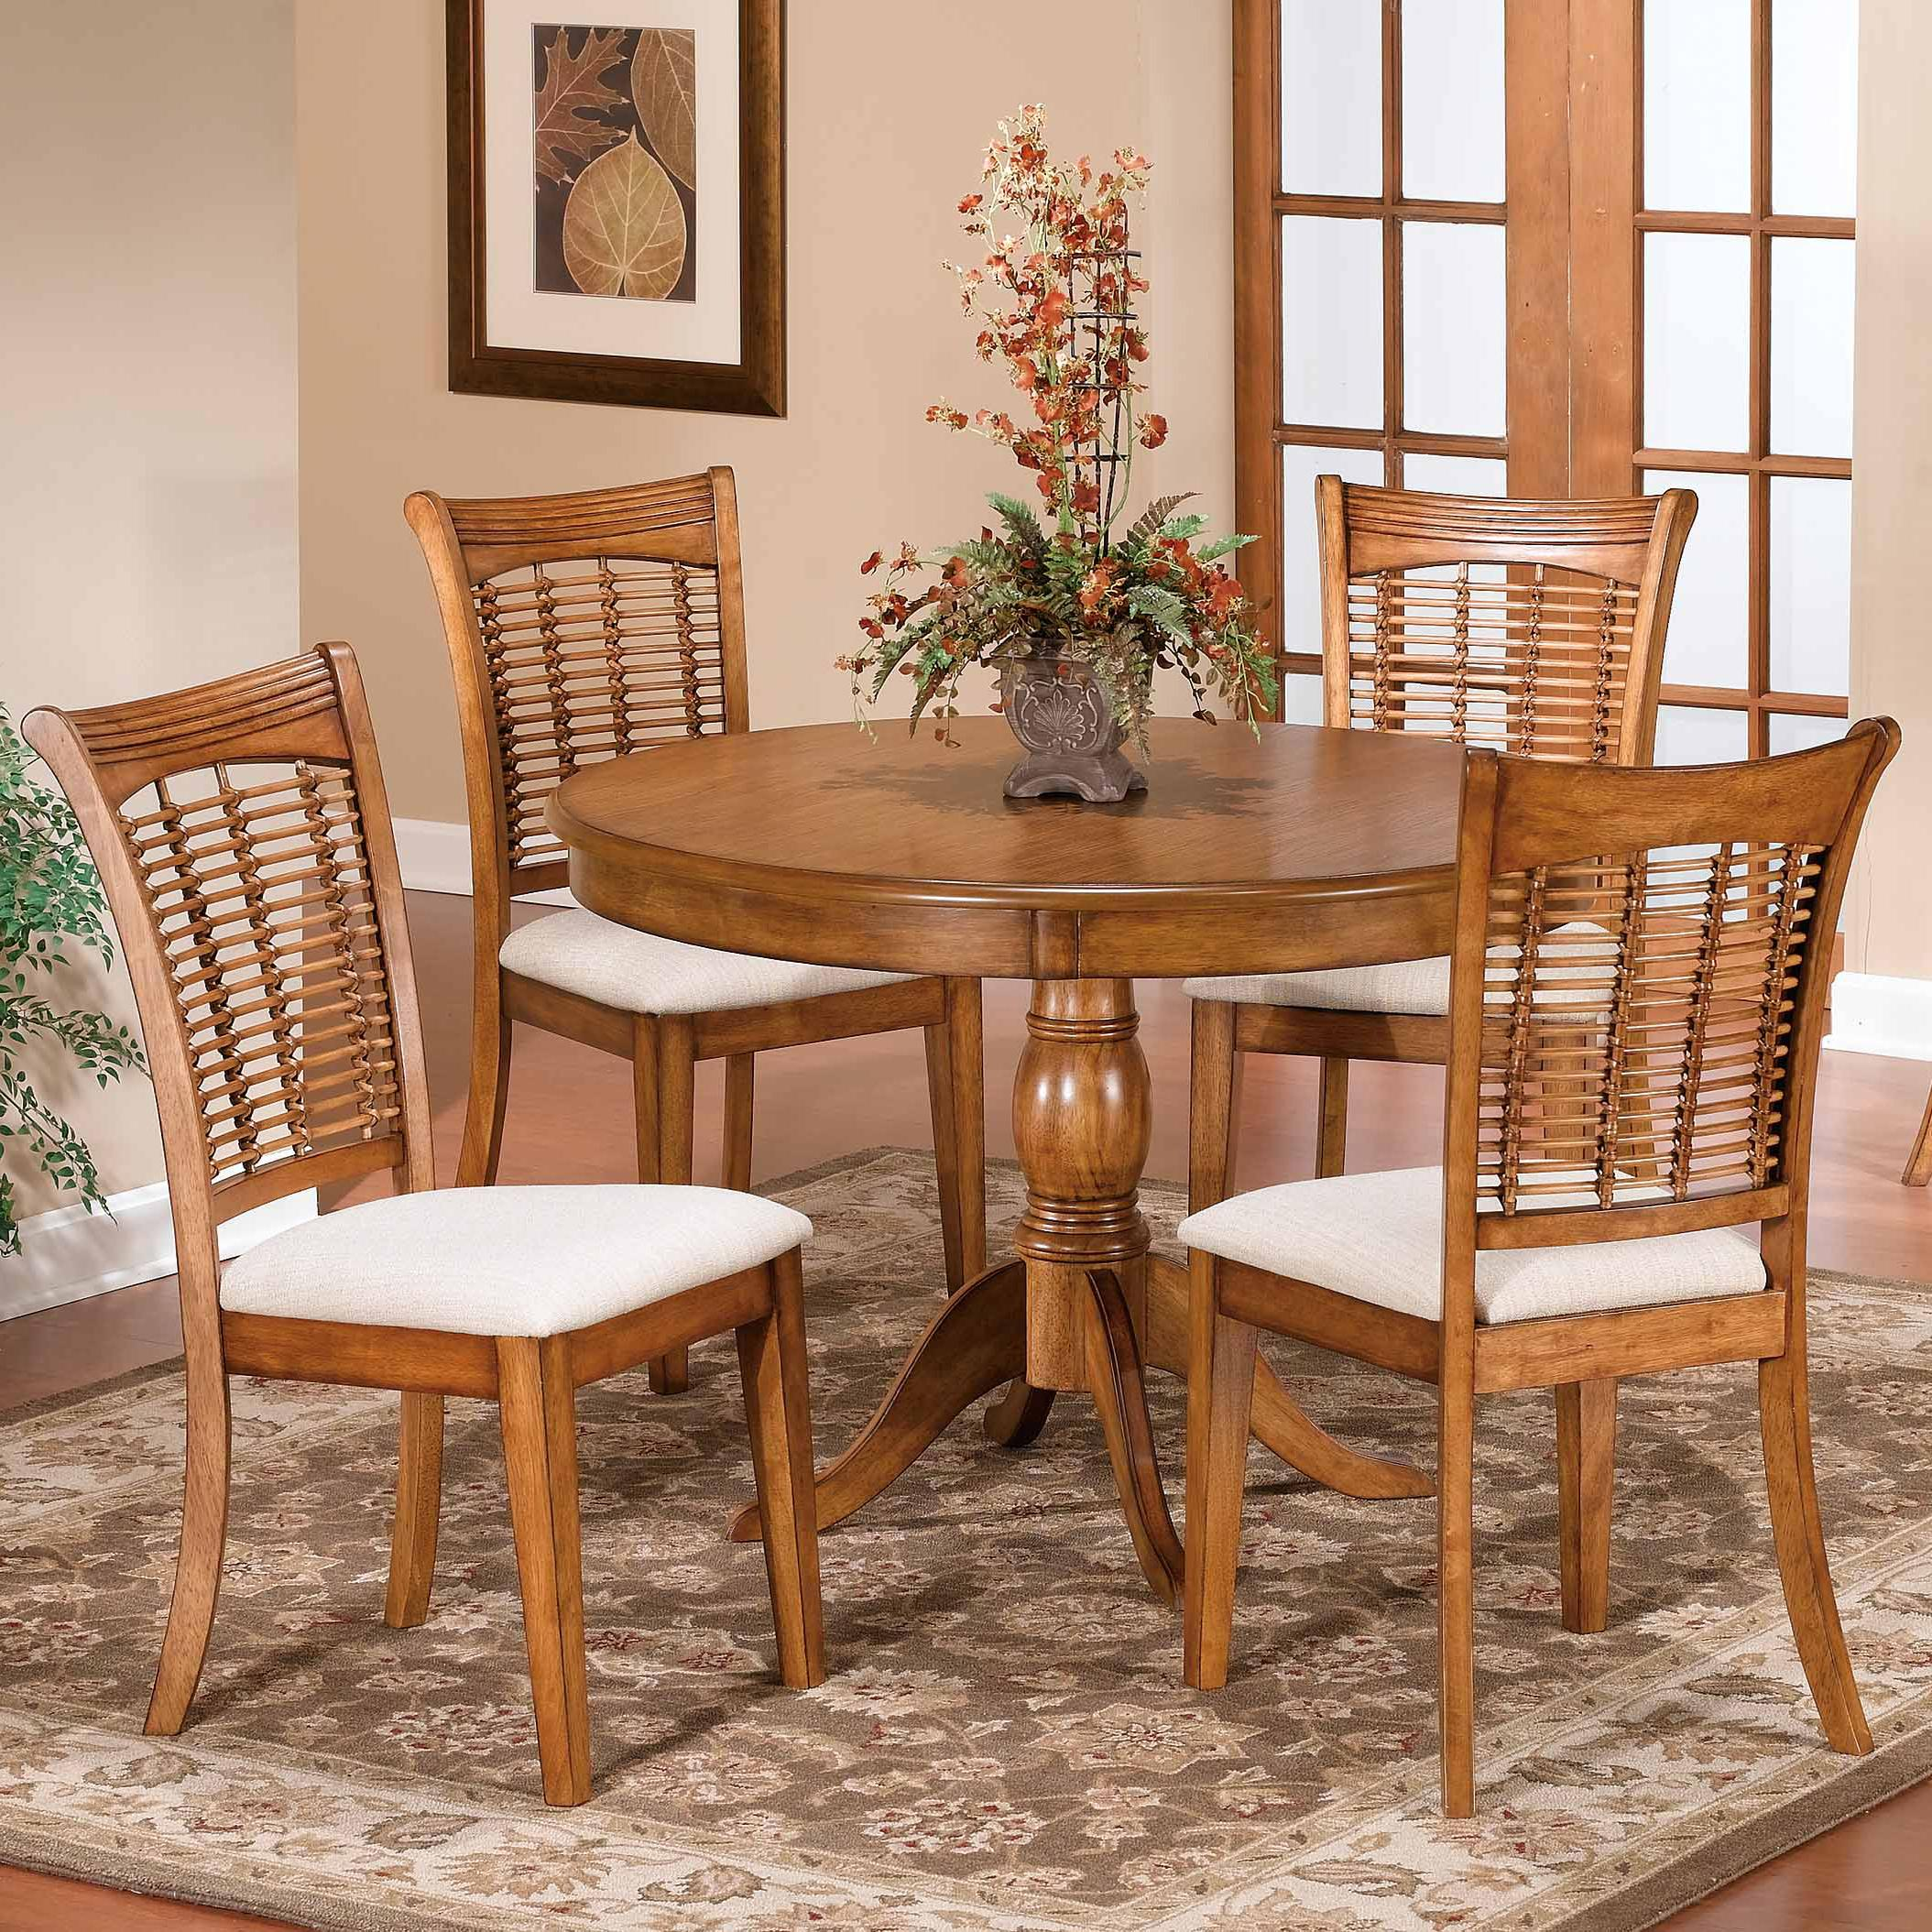 Bayberry and Glenmary Five Piece Round Dining Set at Ruby Gordon Home